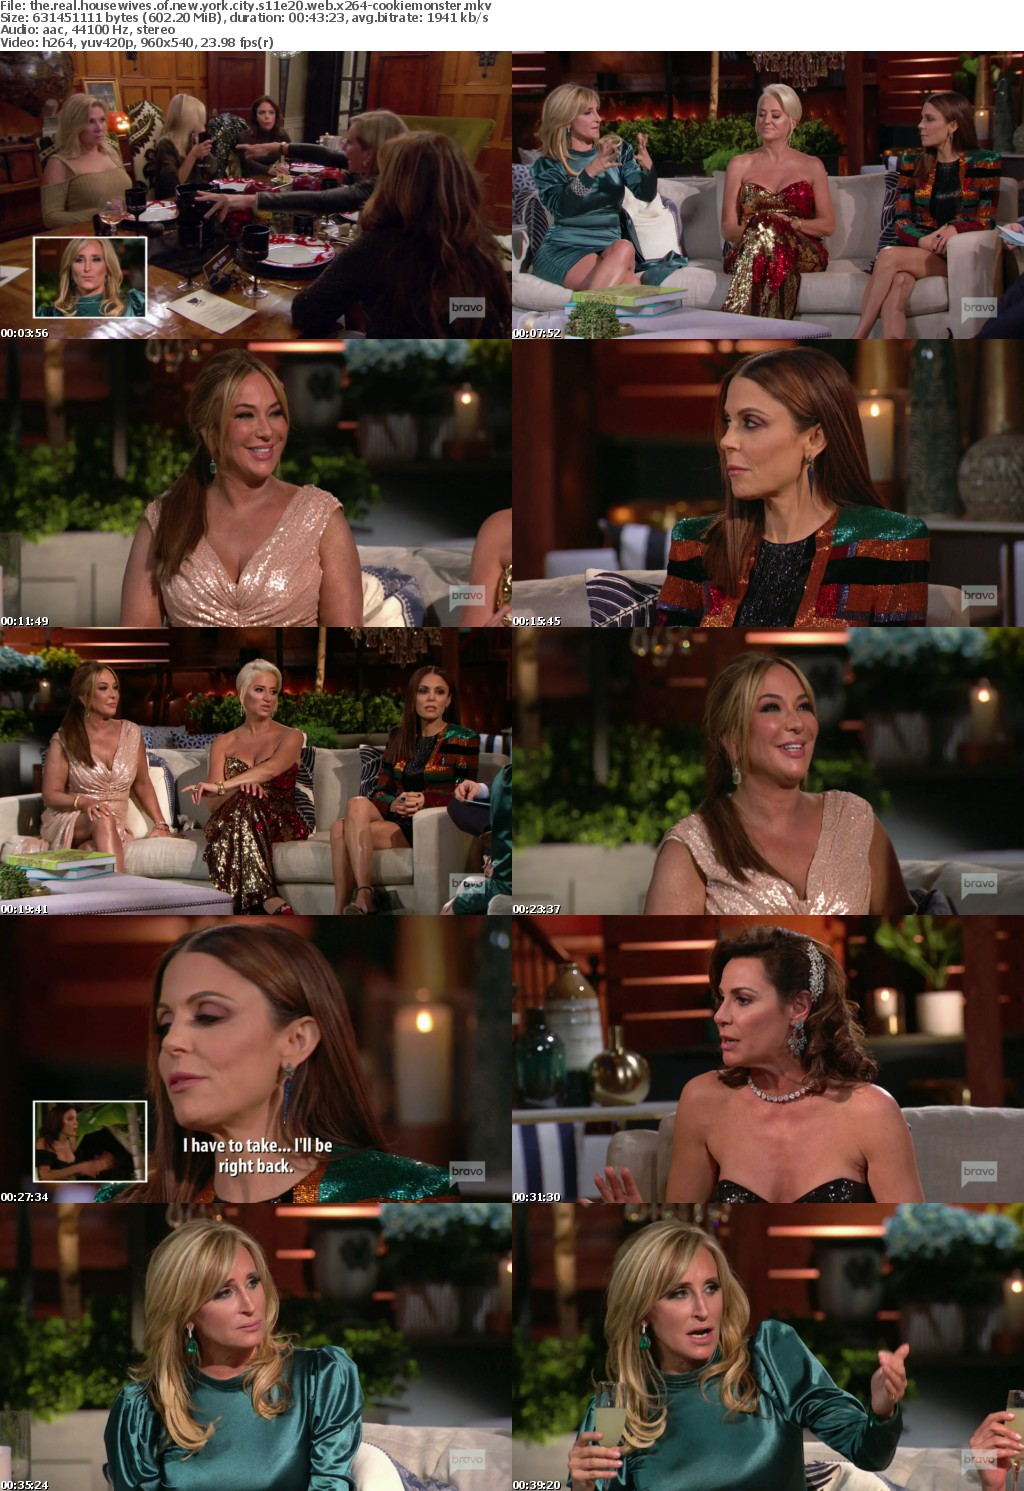 The Real Housewives of New York City S11E20 WEB x264-CookieMonster